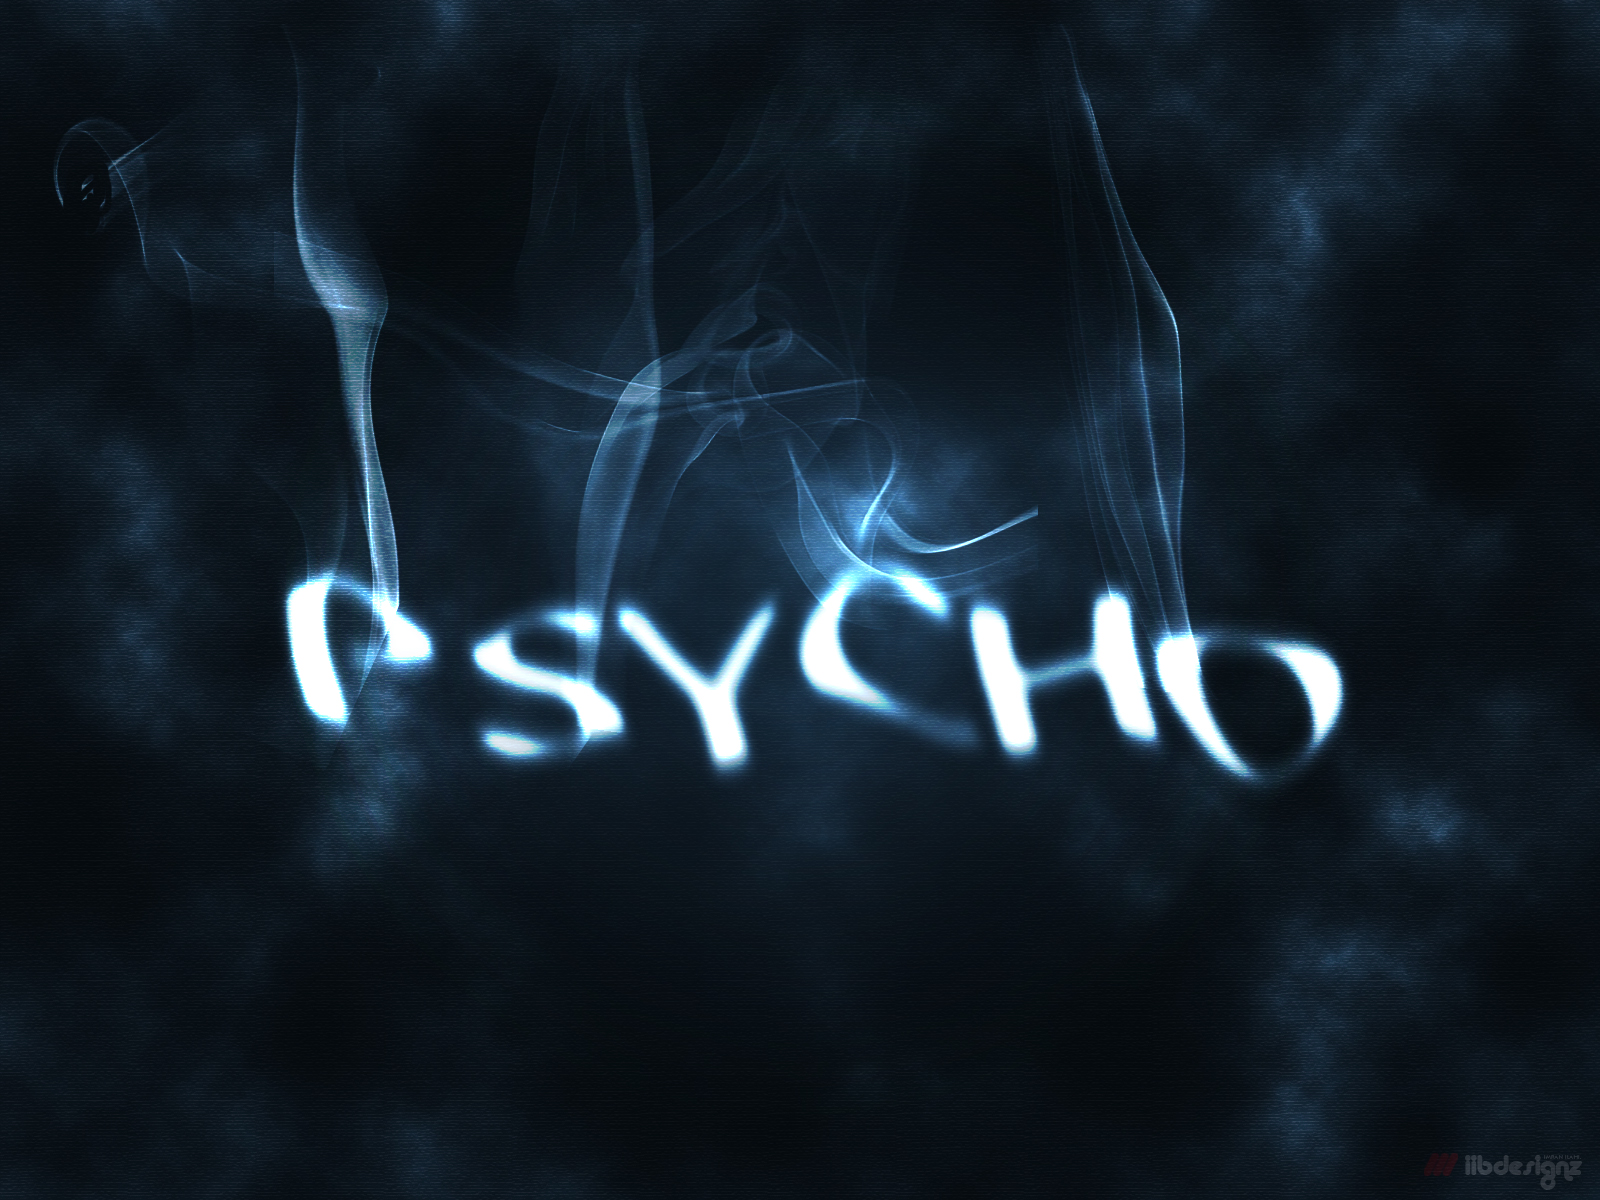 Psycho Wallpapers - WallpaperSafari